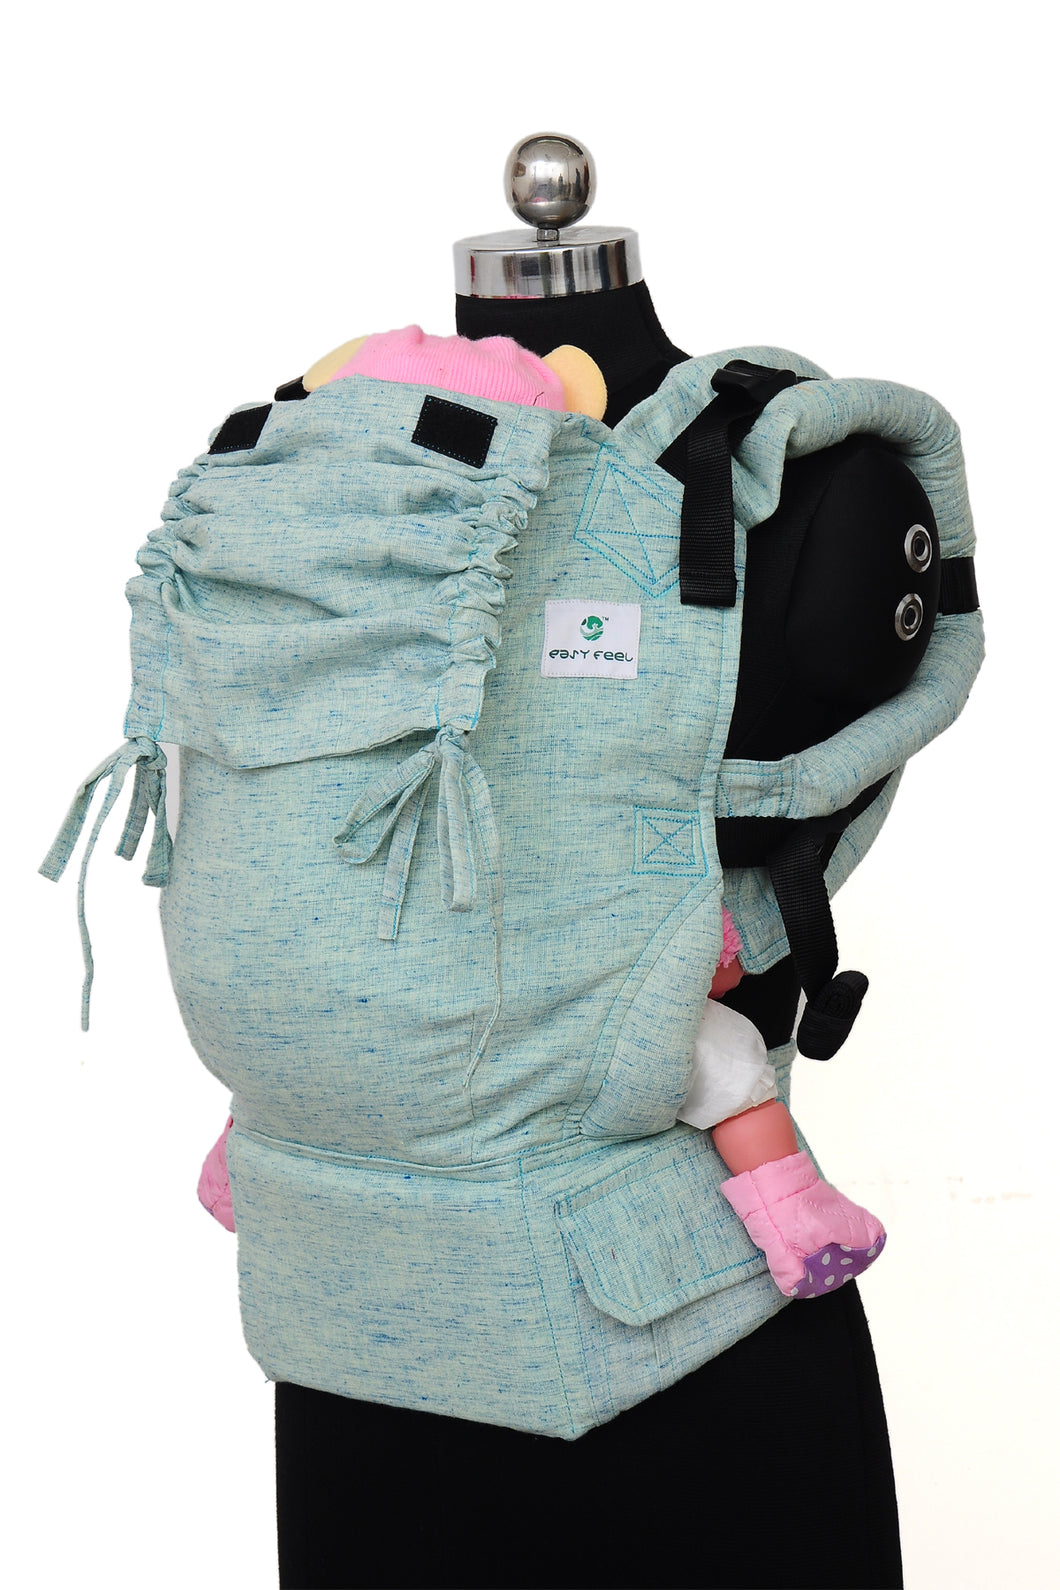 Toddler Soft Structured Carrier - Ocean